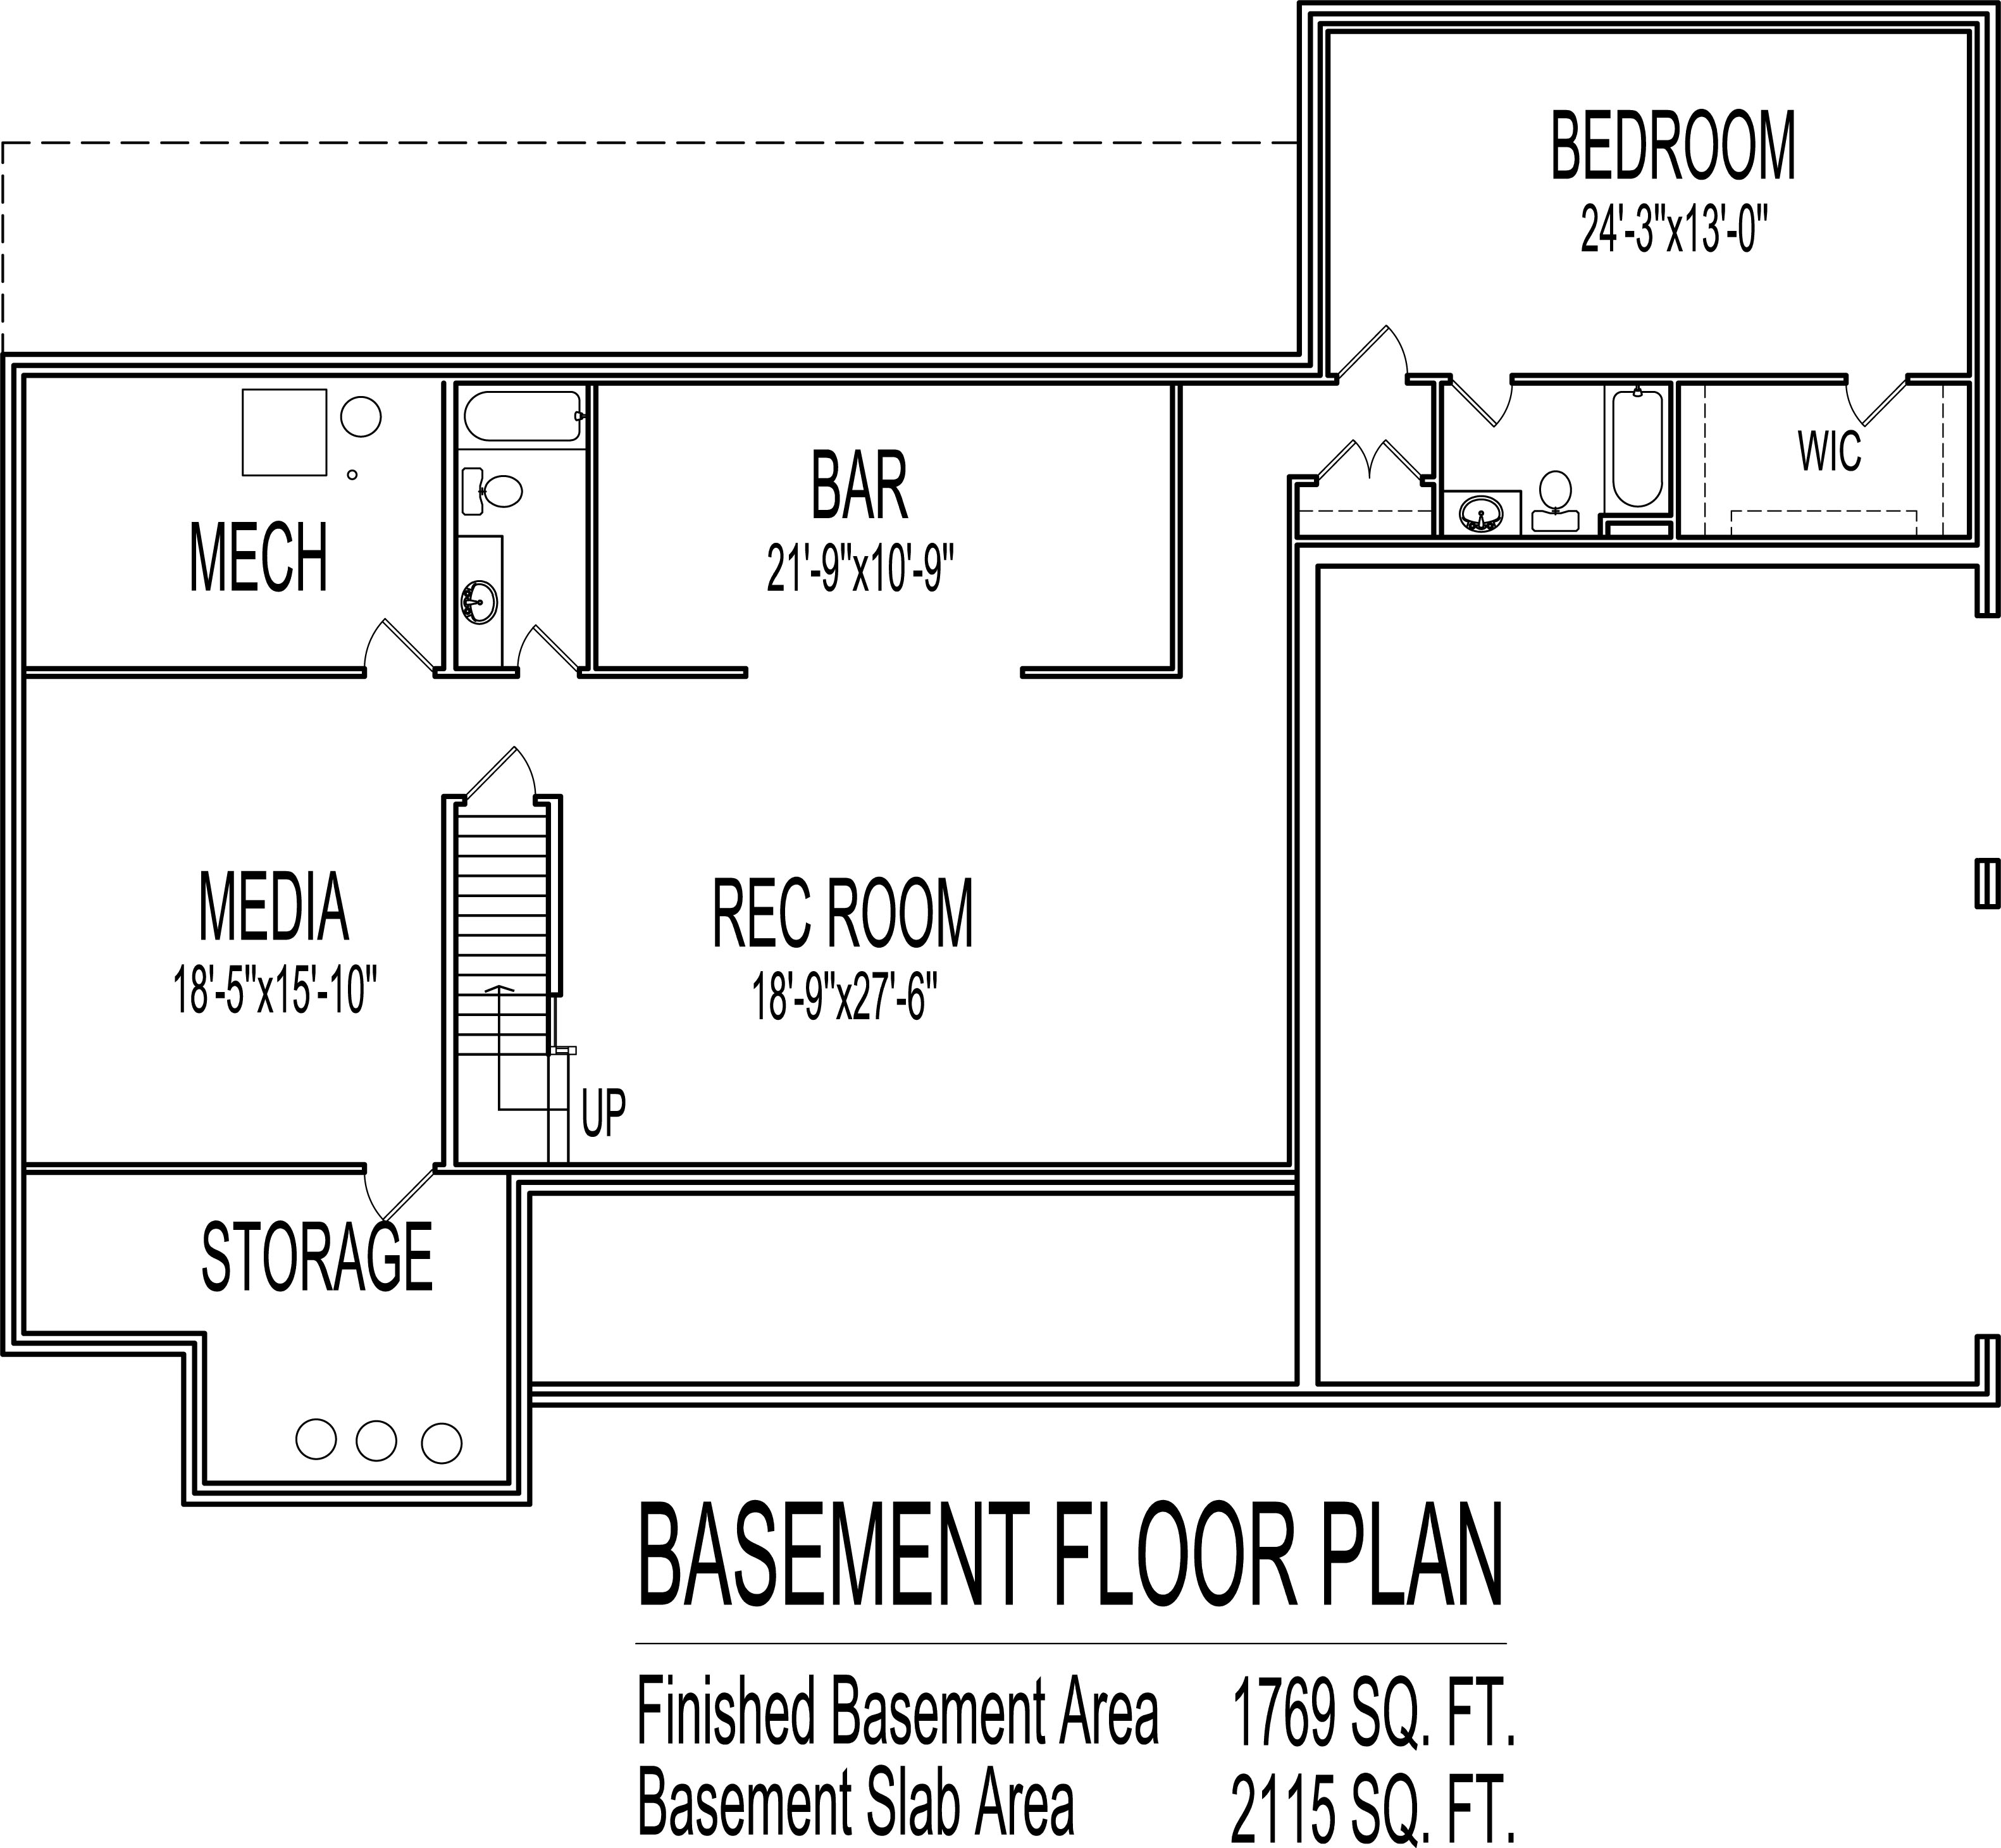 ^ Low ost Single Story 4 Bedroom House Floor Plans ountry Farm 2200 SF